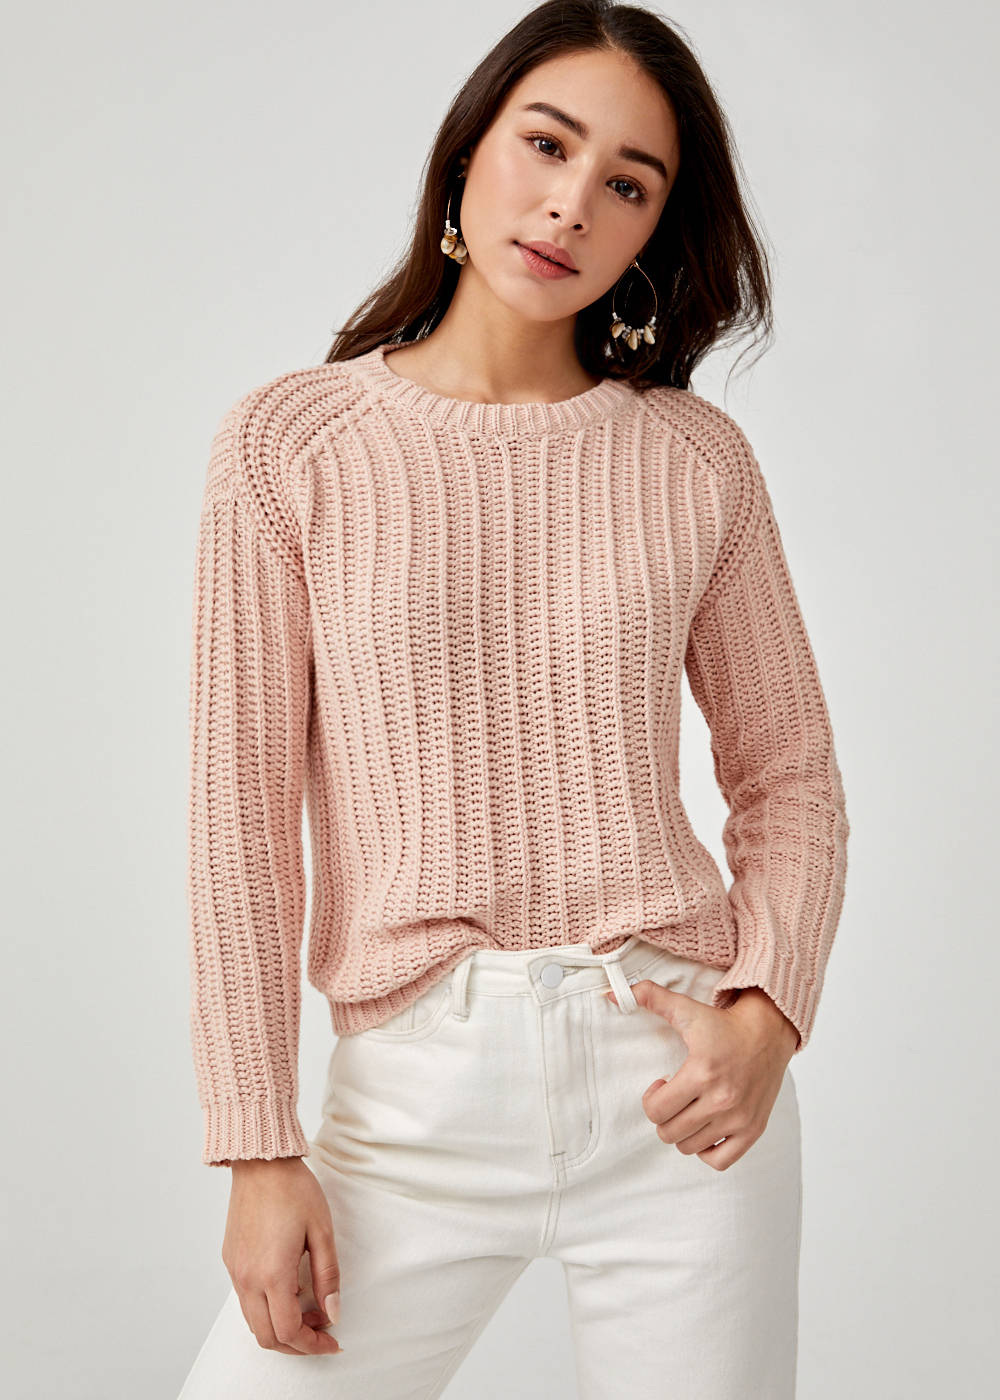 Thesally Knit Sweater